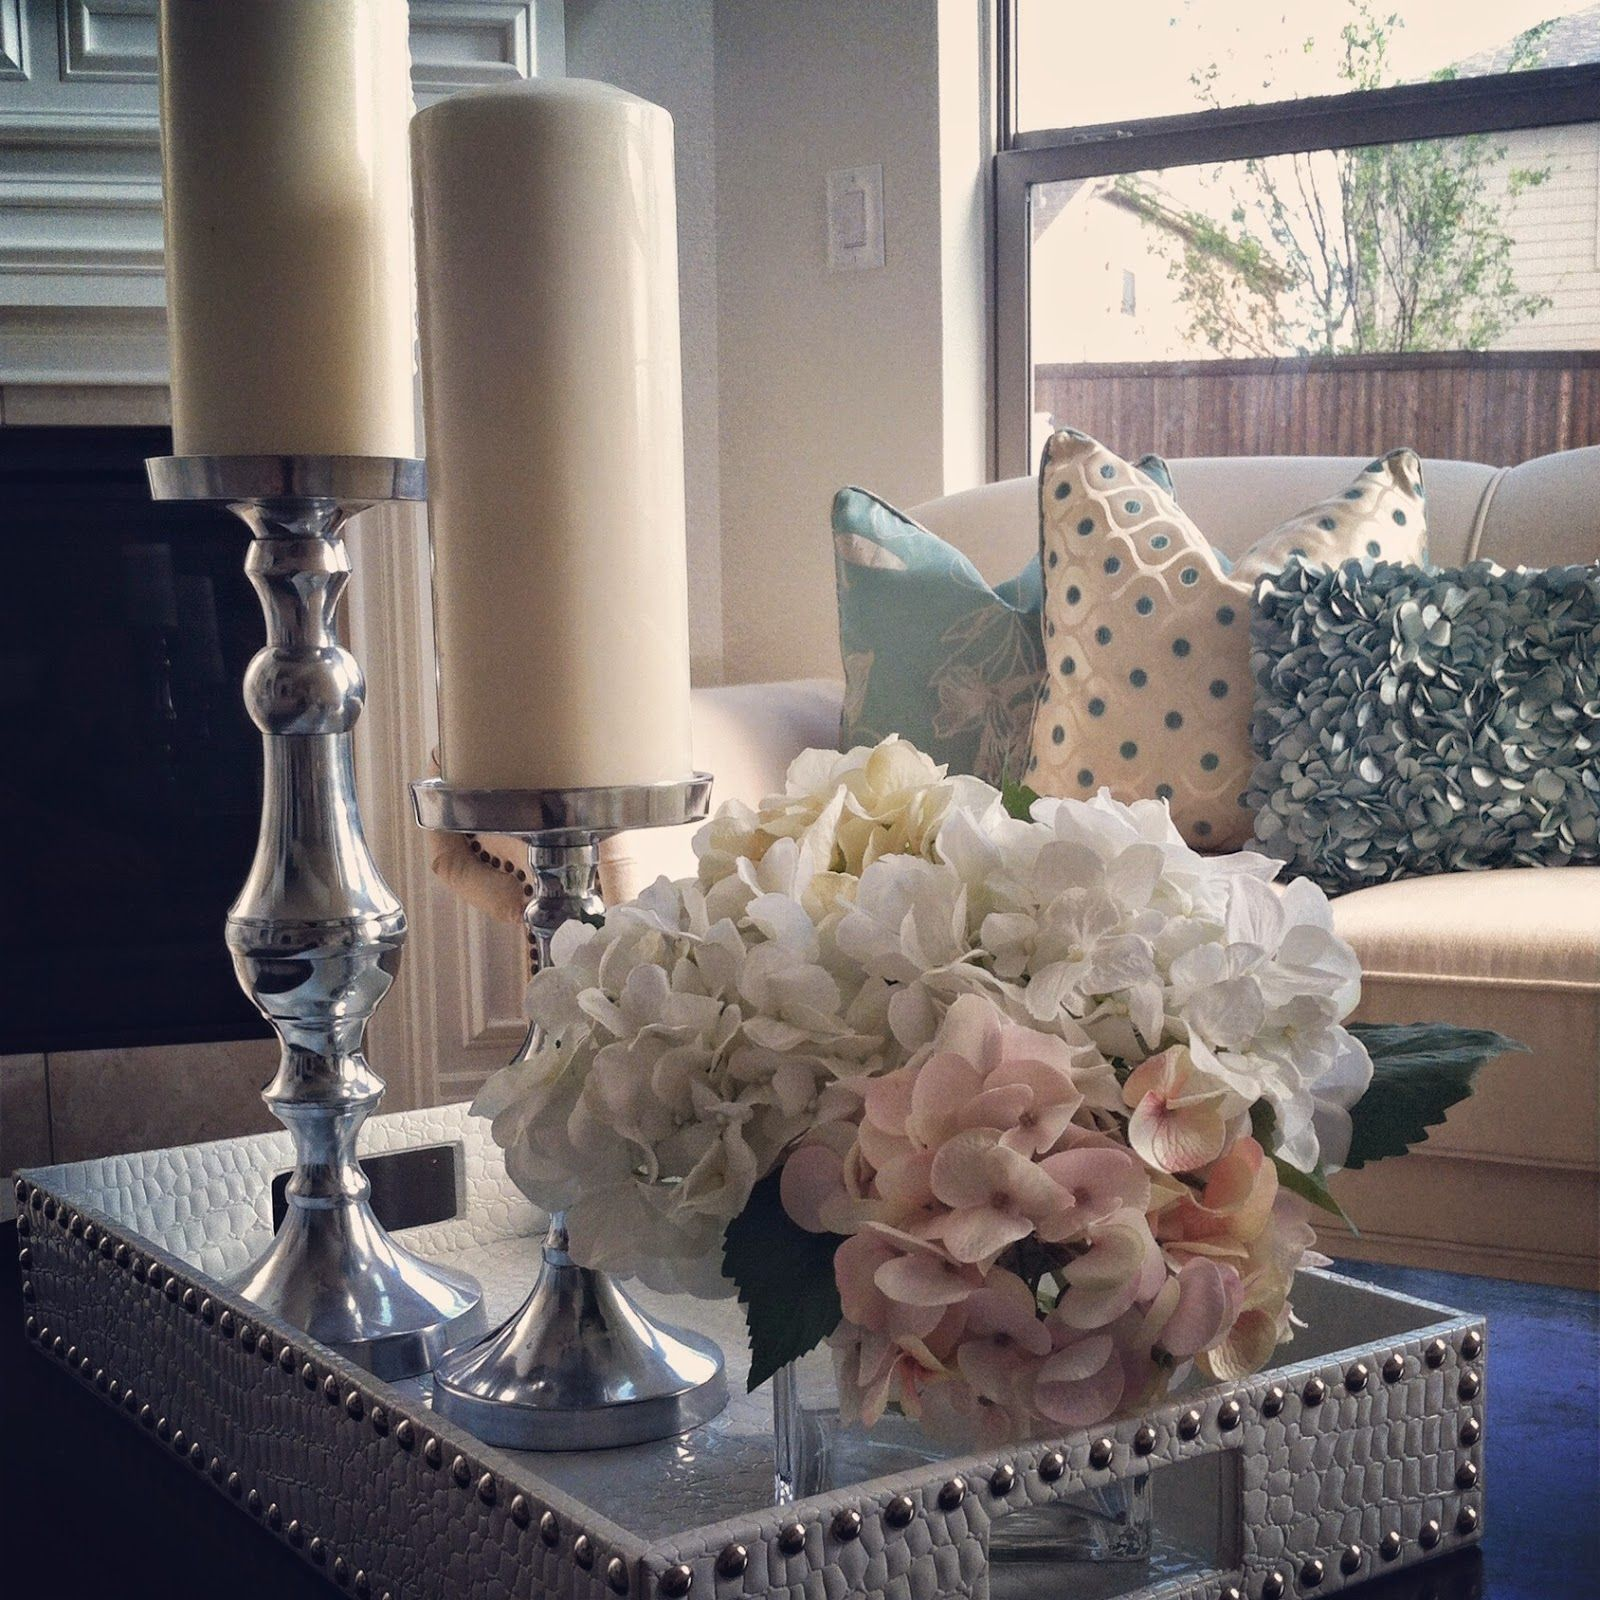 nissa-lynn interiors: my coffee table decor in the morning